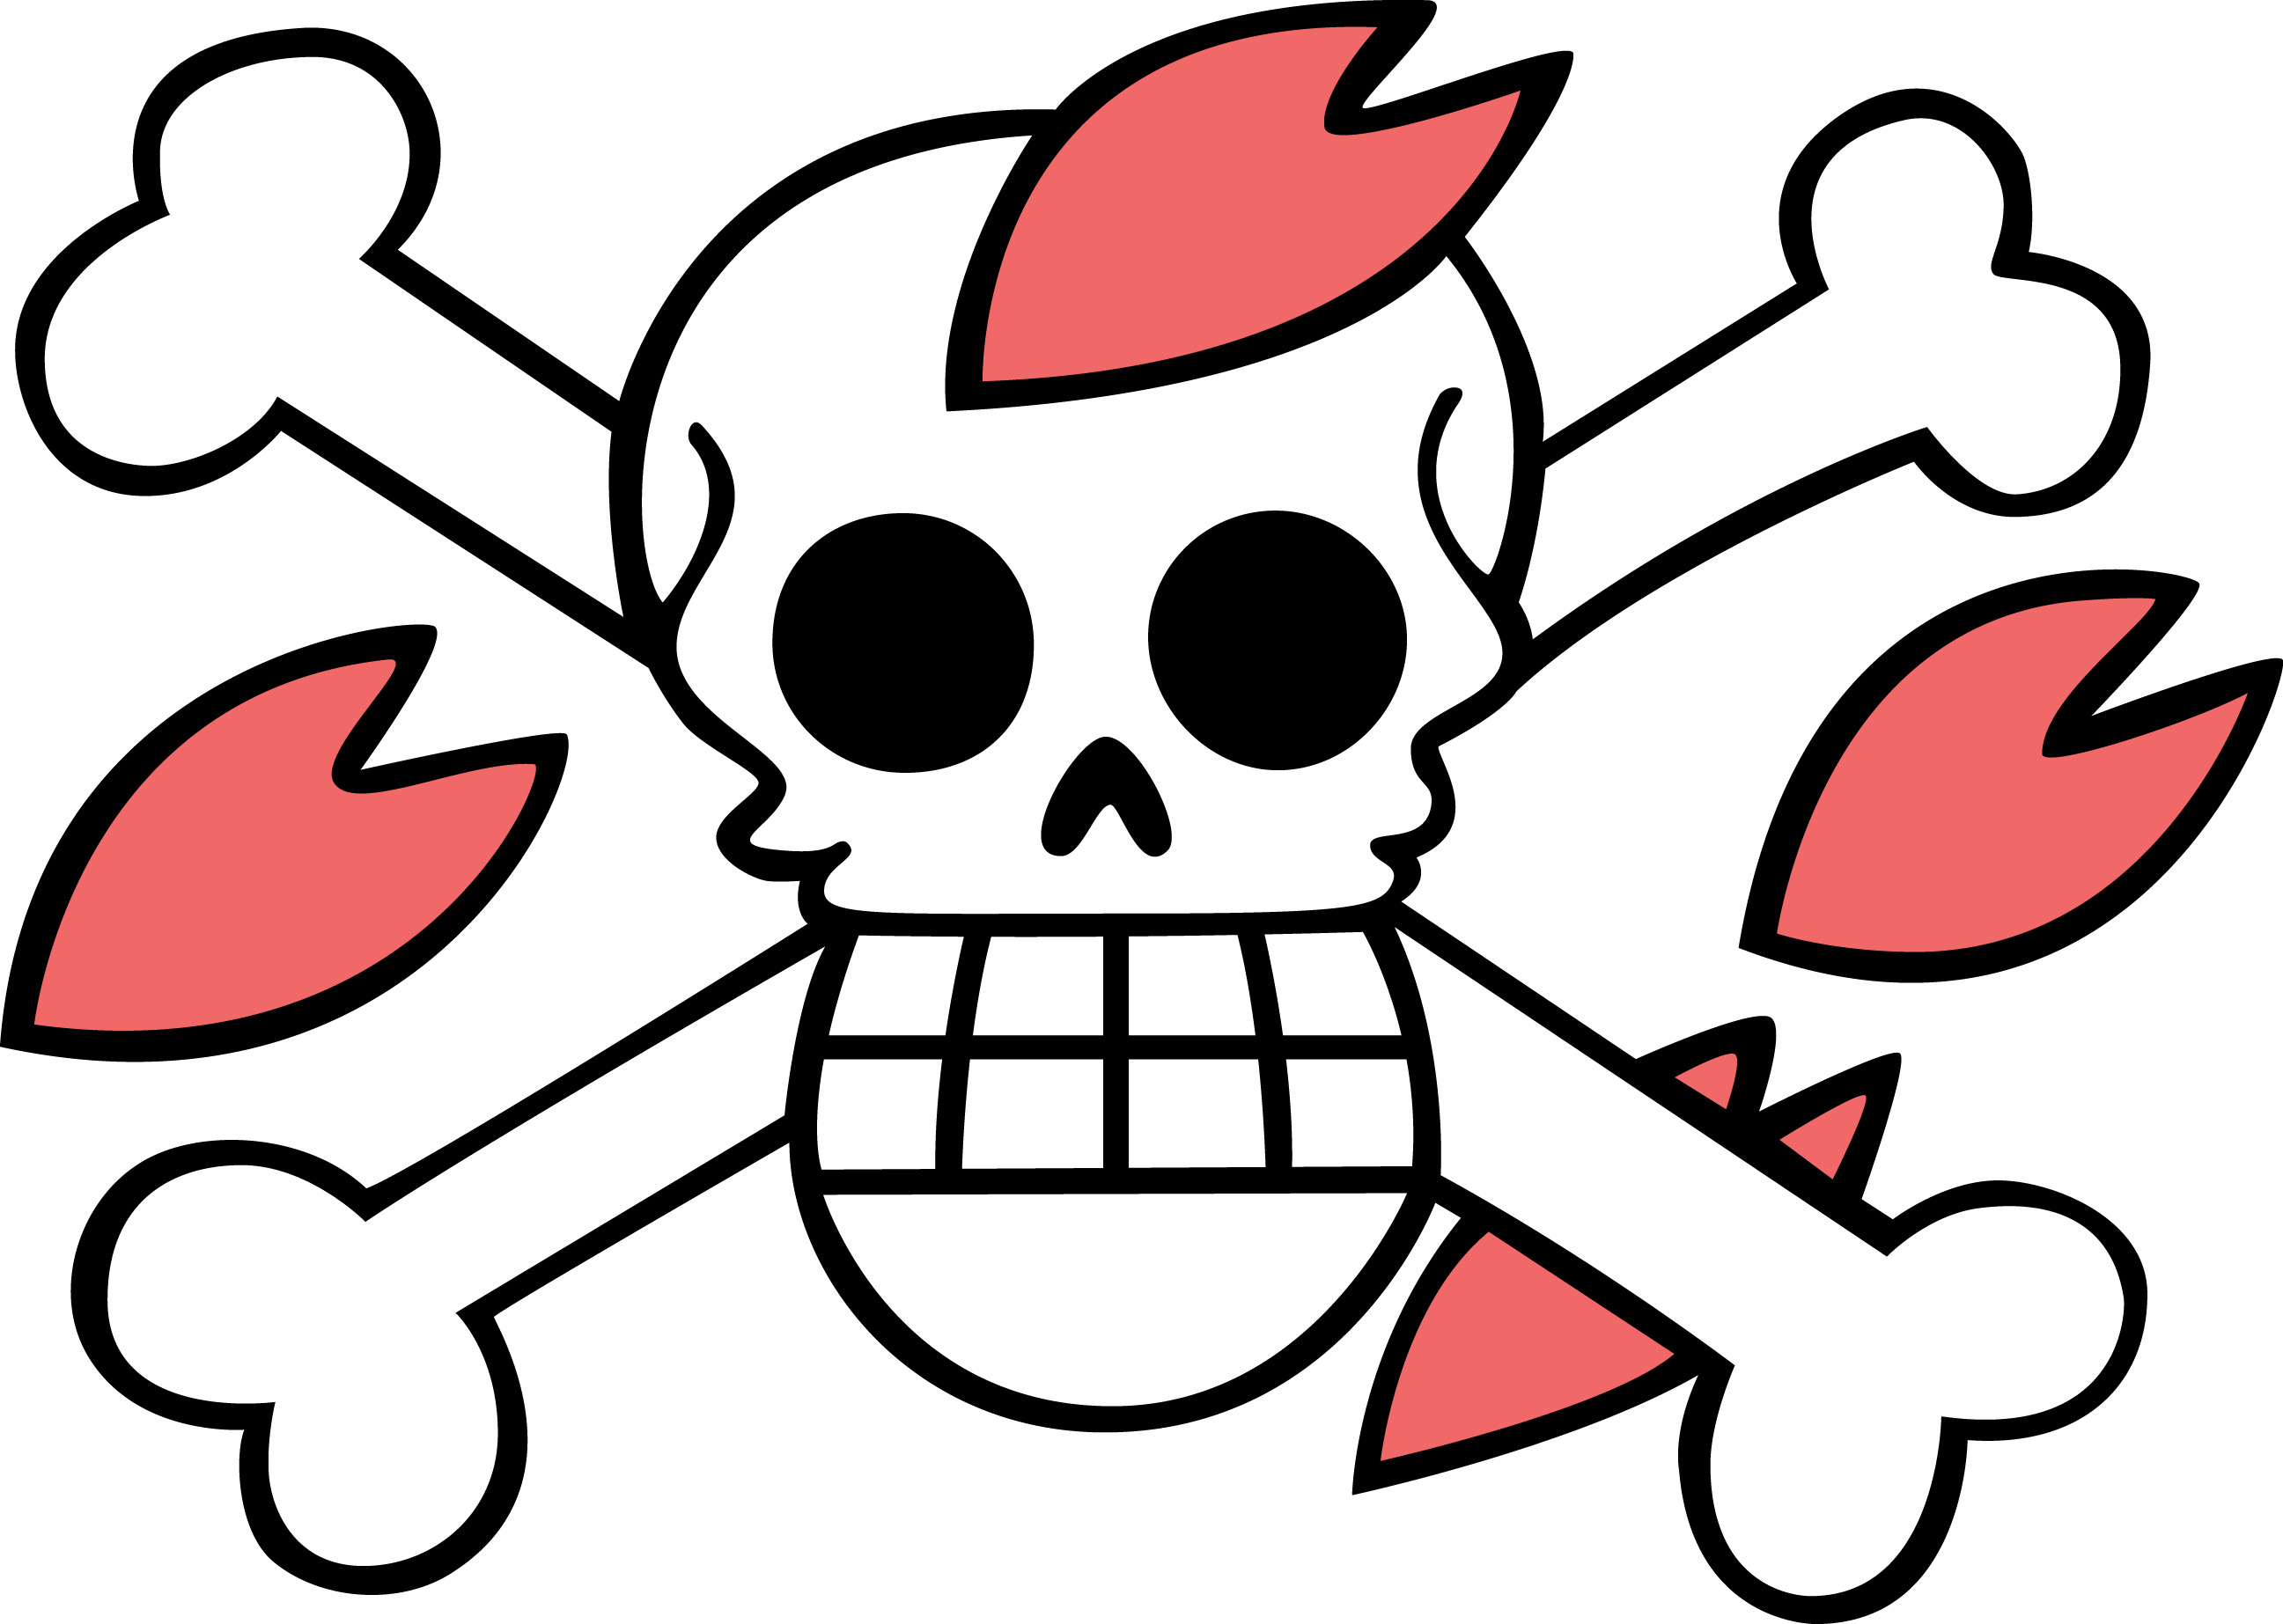 Chopper Flag - One Piece by Sanji-Devastador on DeviantArt